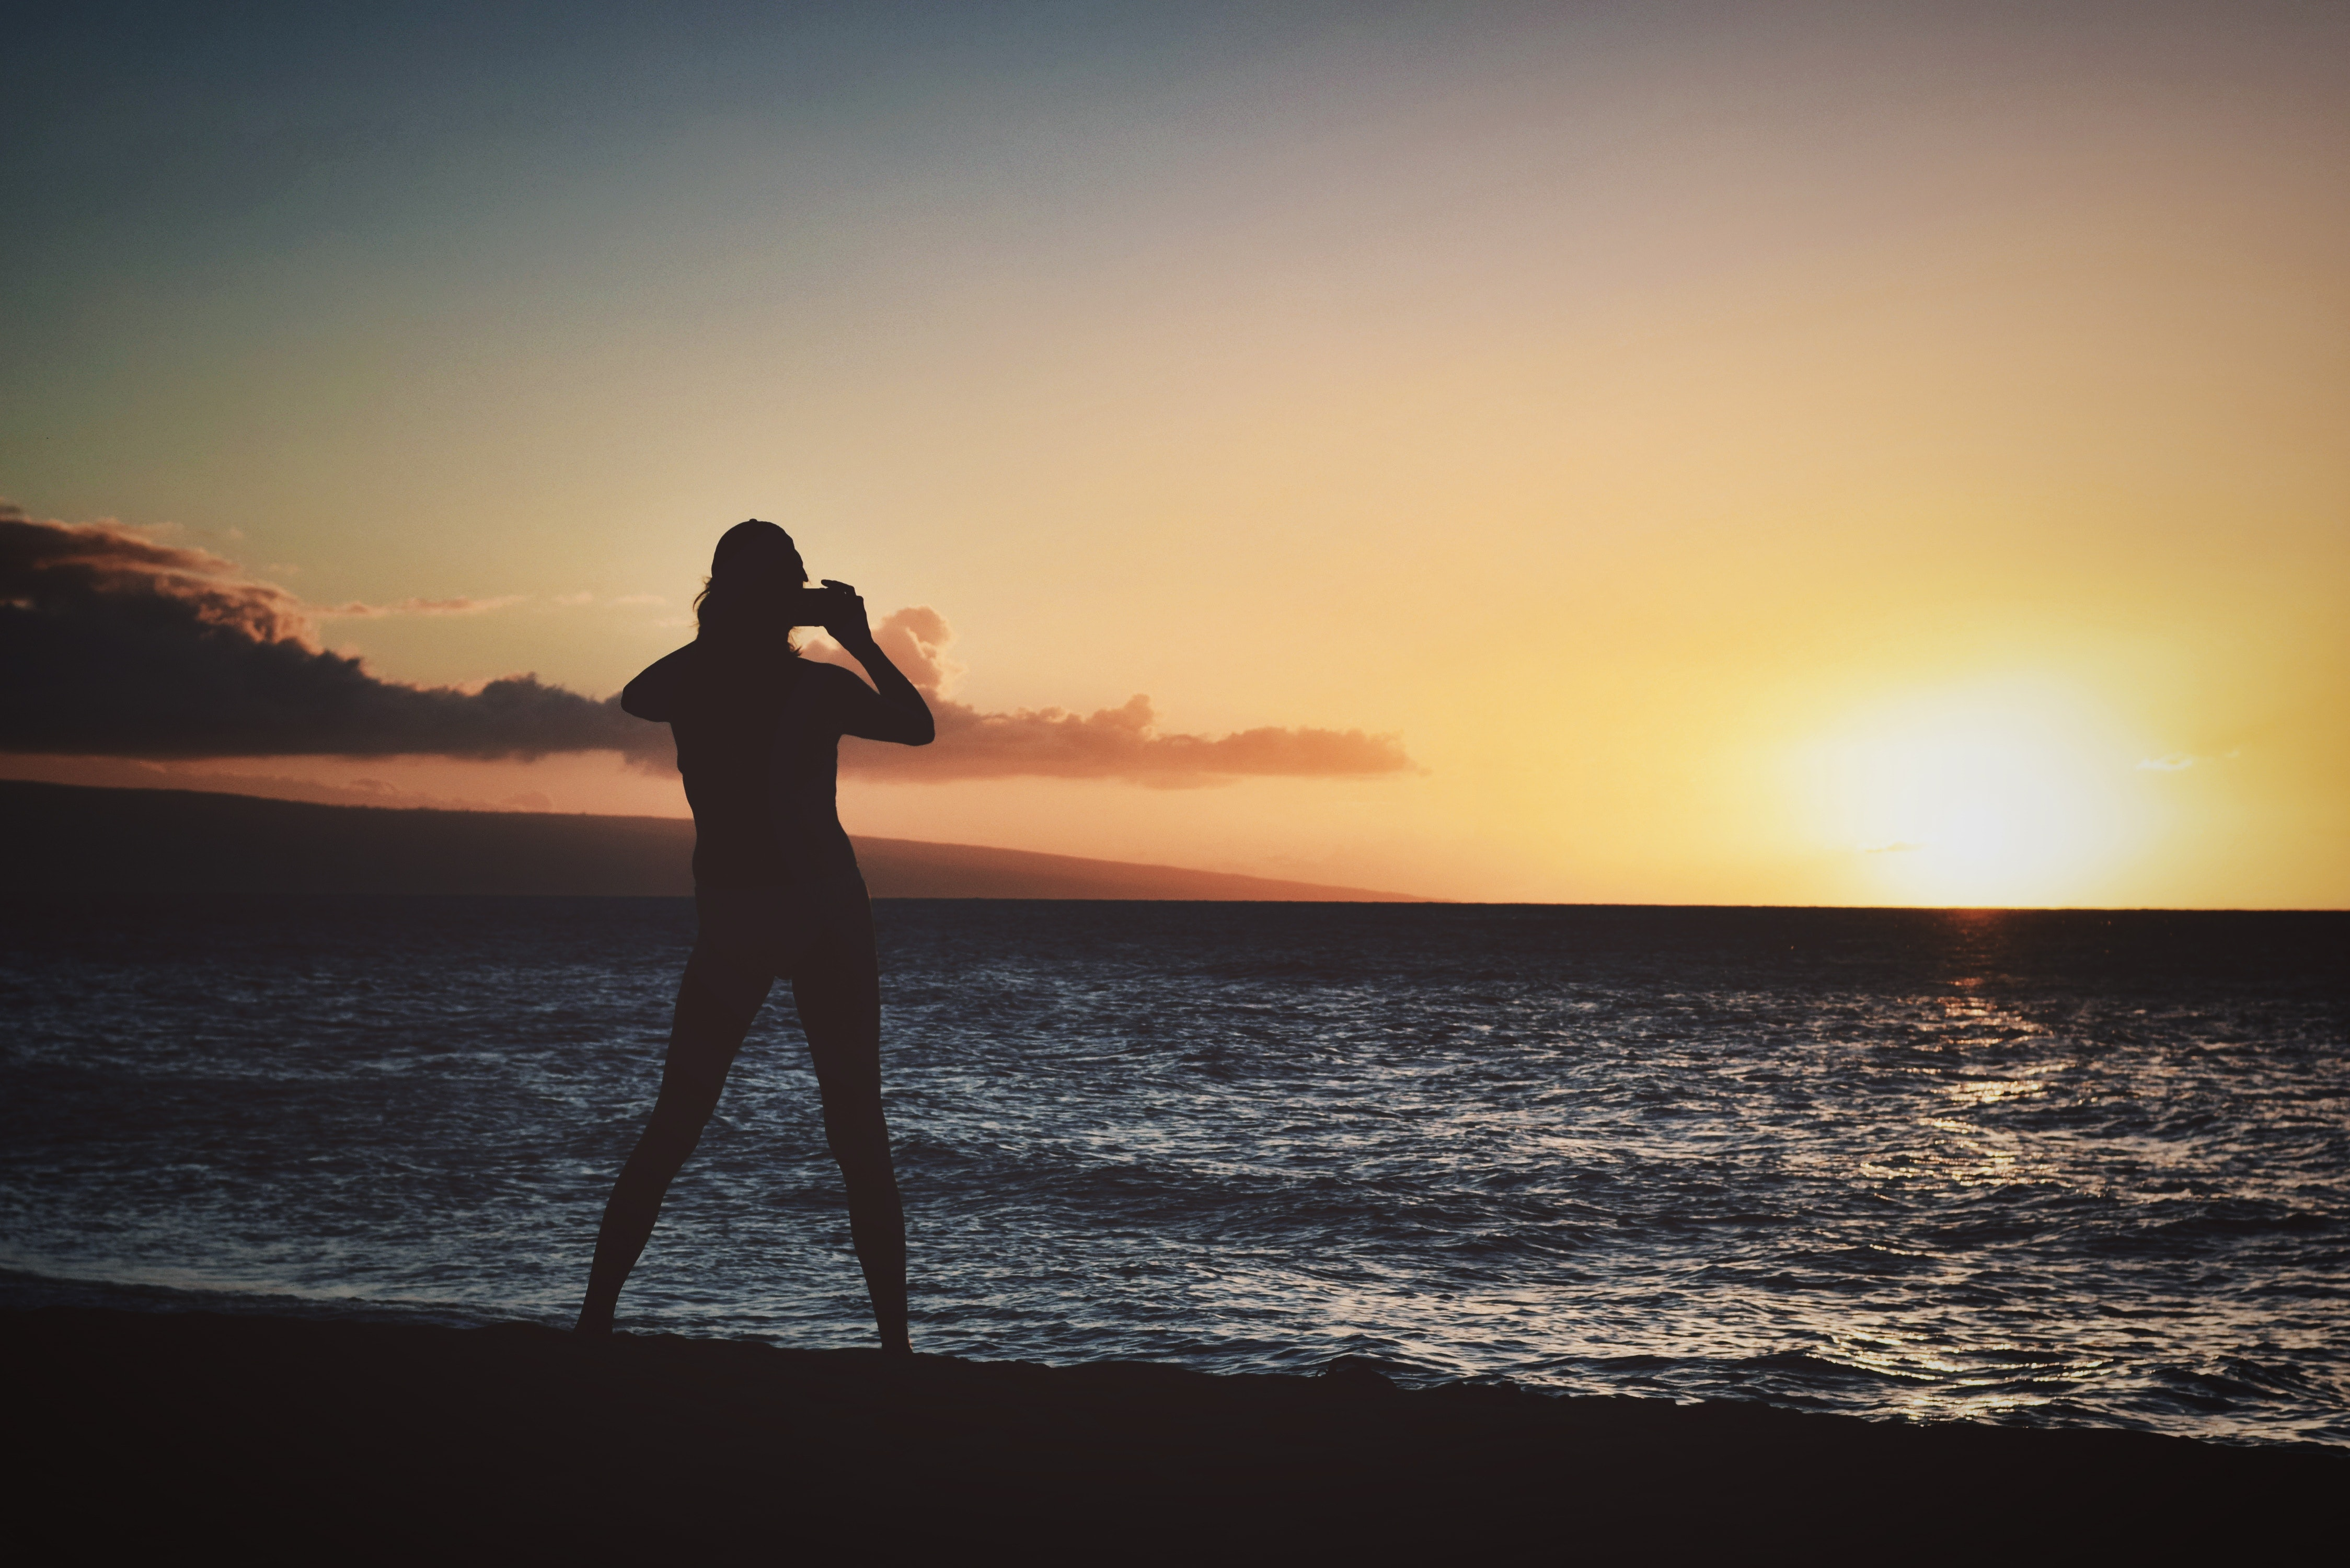 Silhouette of woman holding camera near seashore during golden hour photo